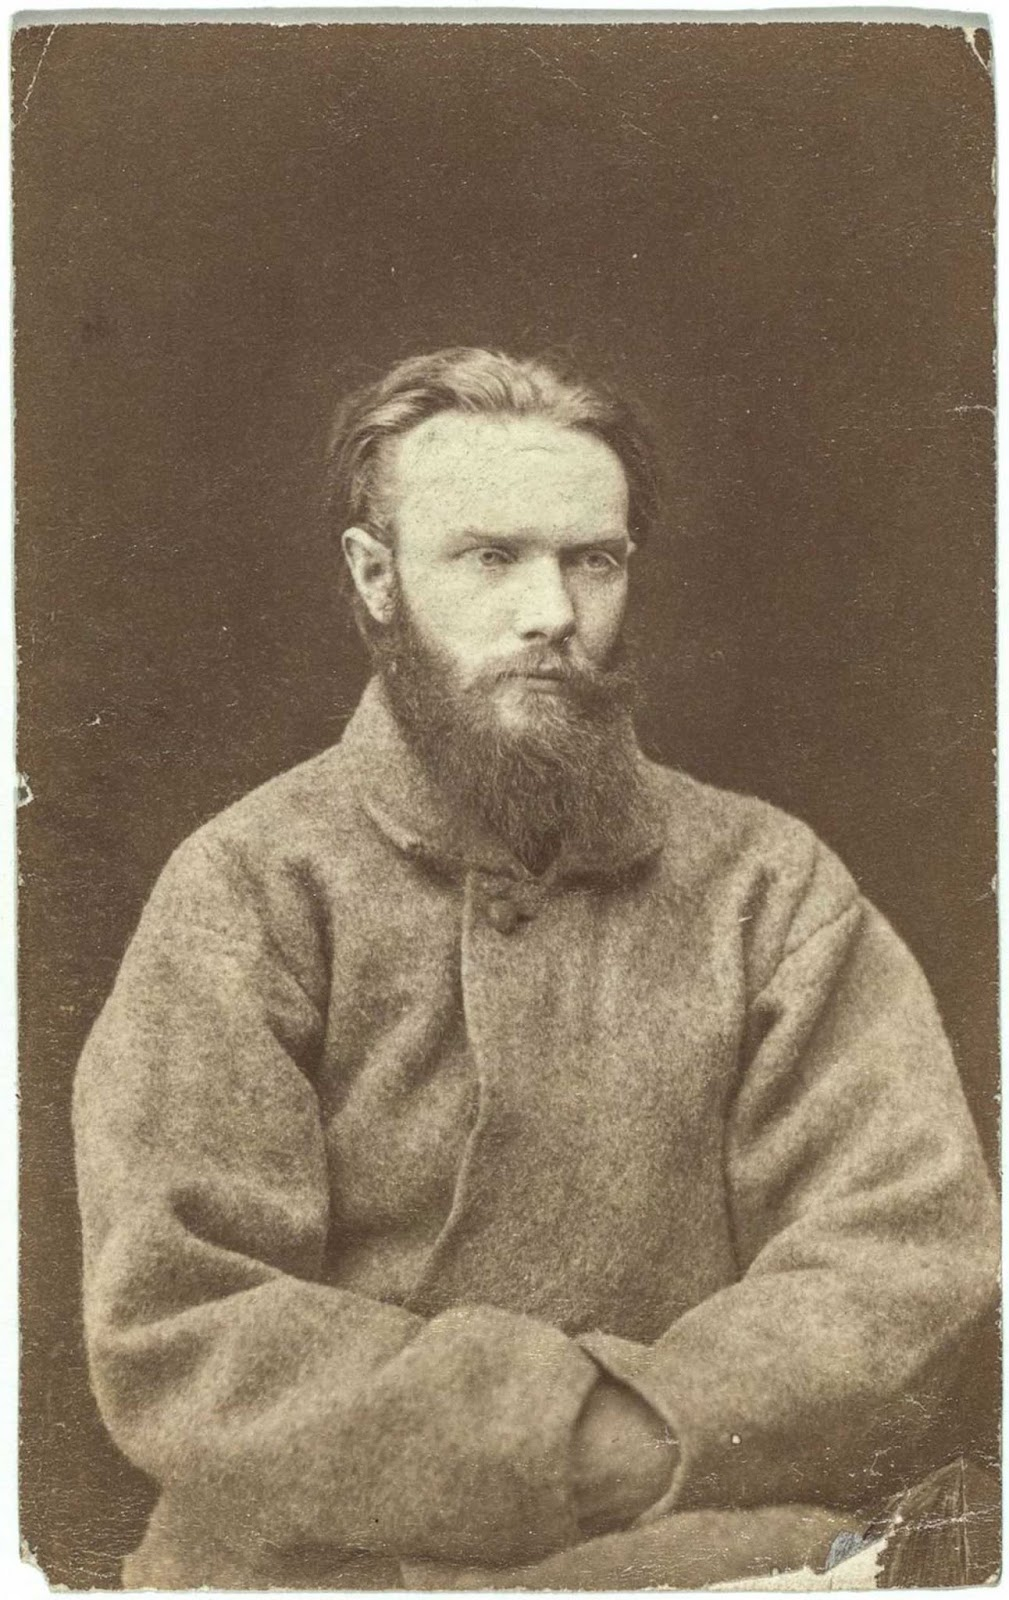 Shchedrin, a schoolteacher, was a political prisoner at the Kara gold mines who escaped in April 1882 by tunneling under the prison wall. He and other prisoners were recaptured and permanently chained to wheelbarrows, before being sent to isolation cells at the castle of Schlisselburg.